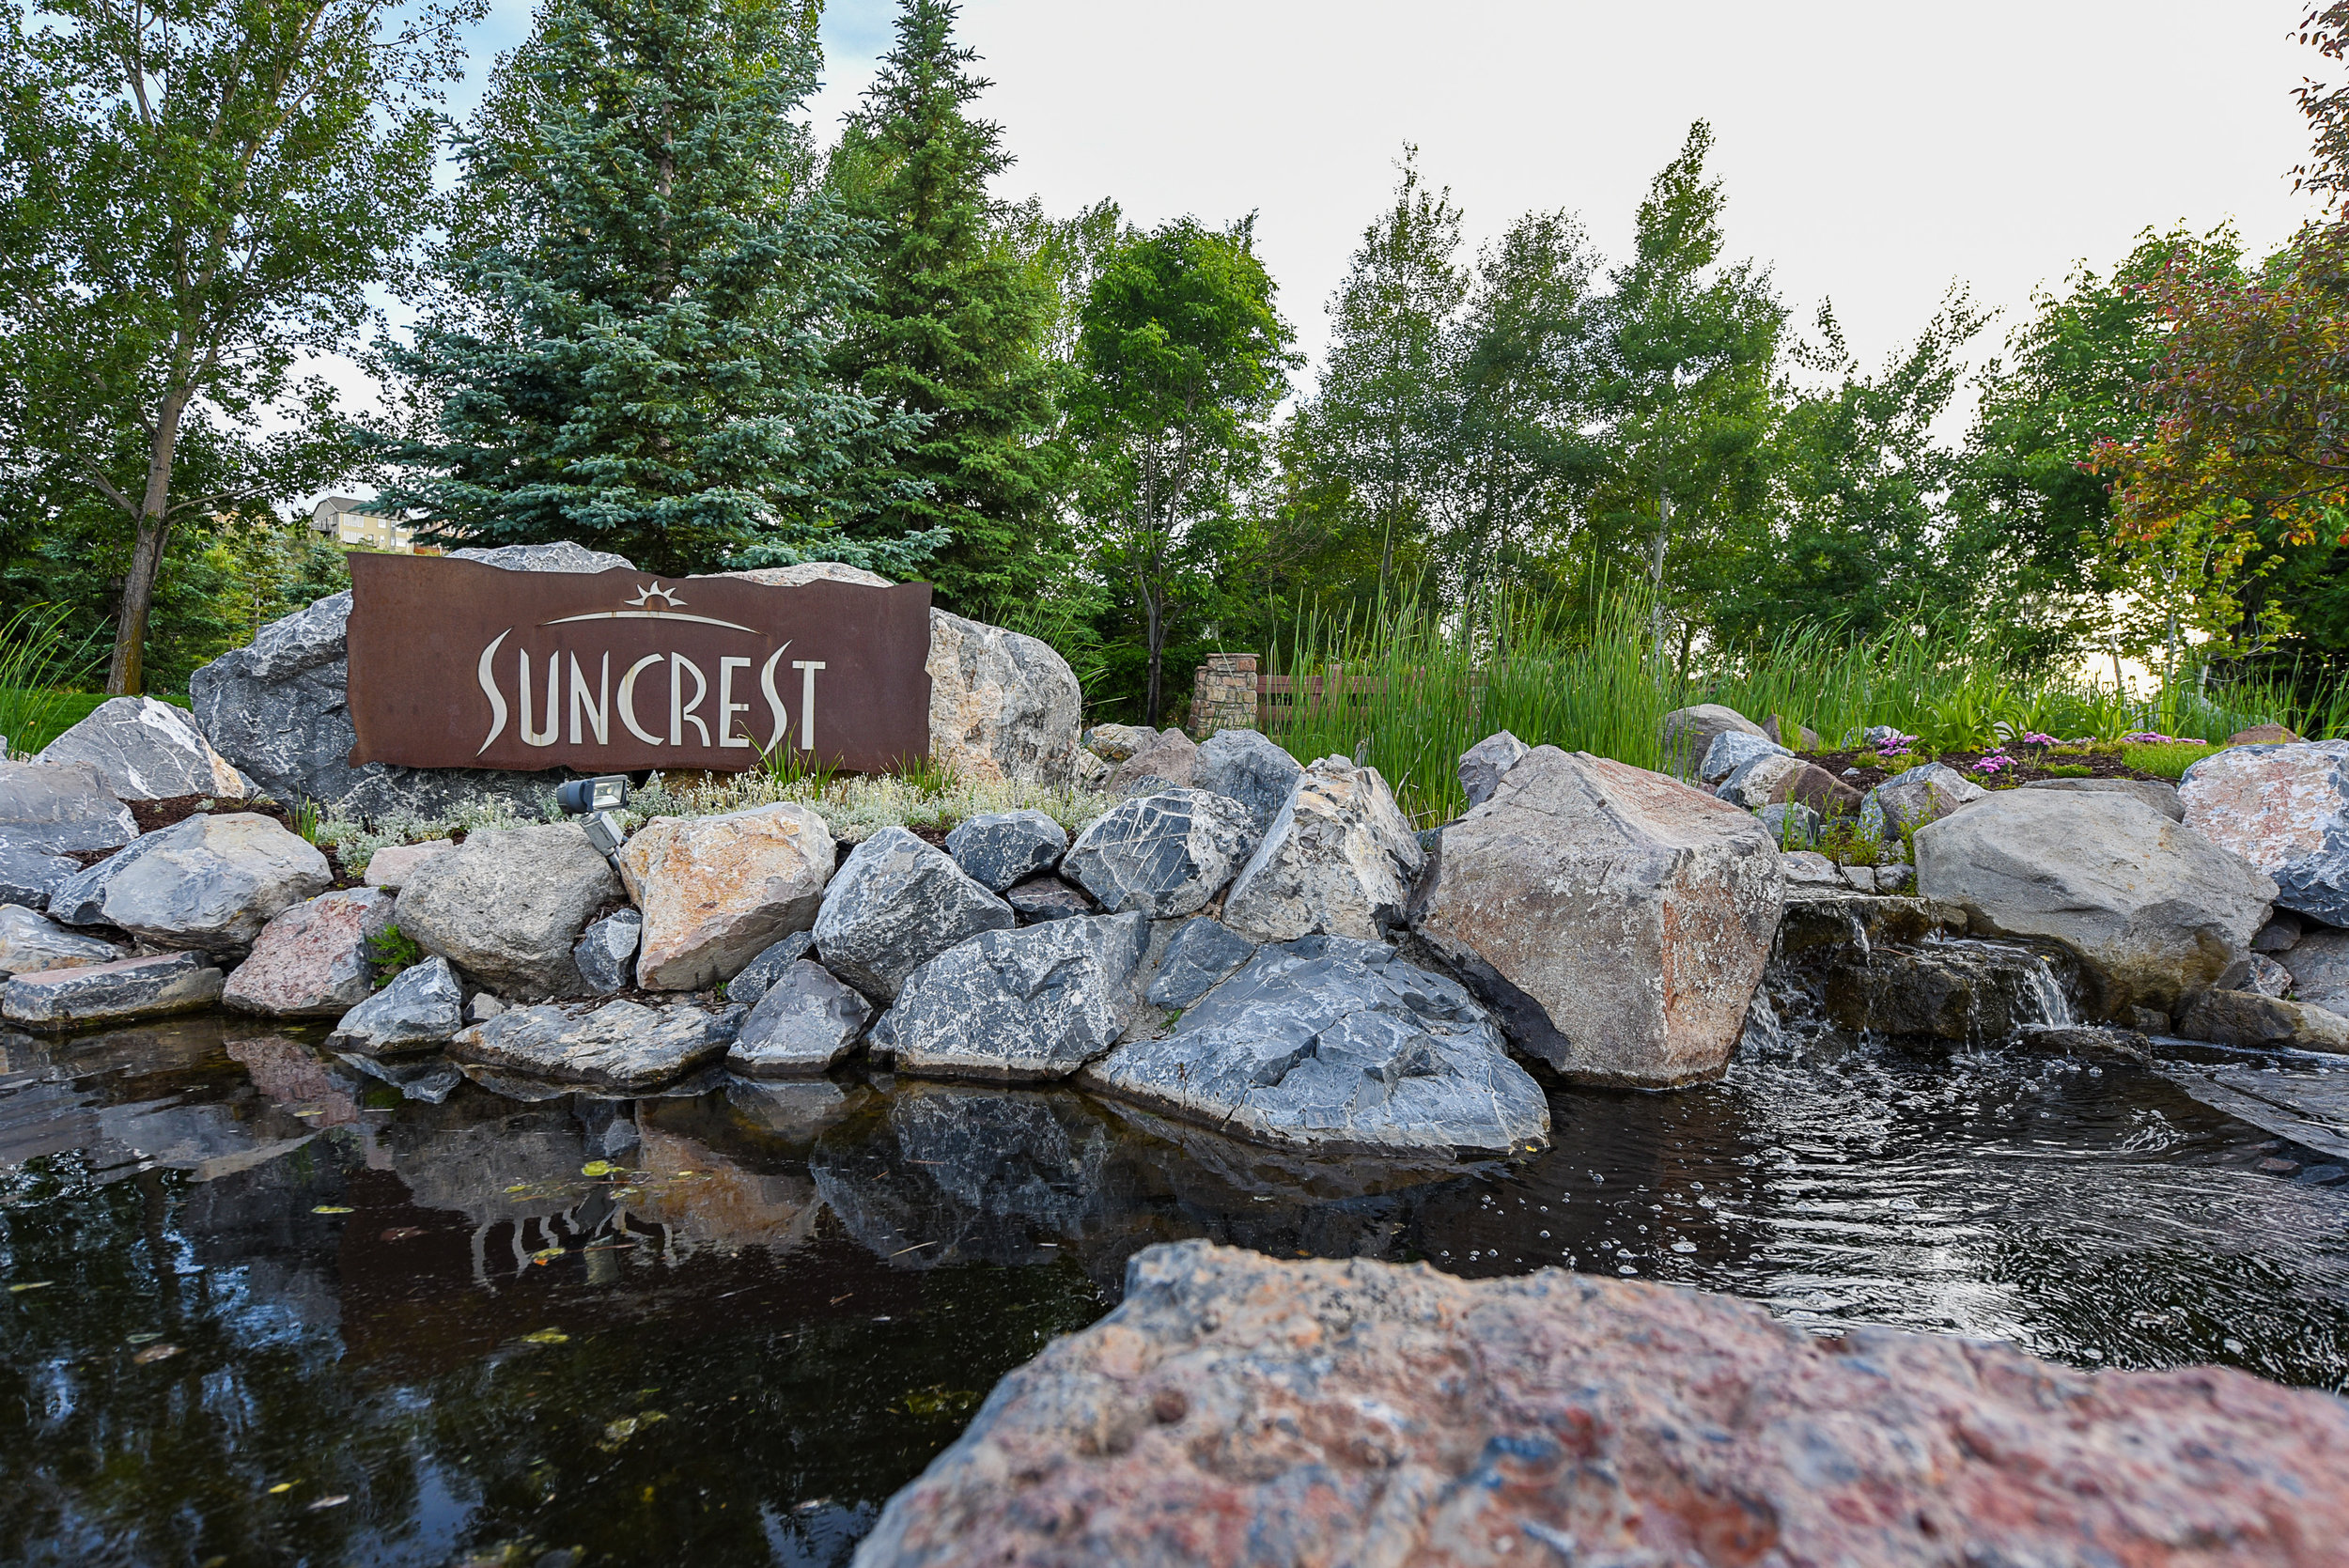 suncrest sign1.jpg